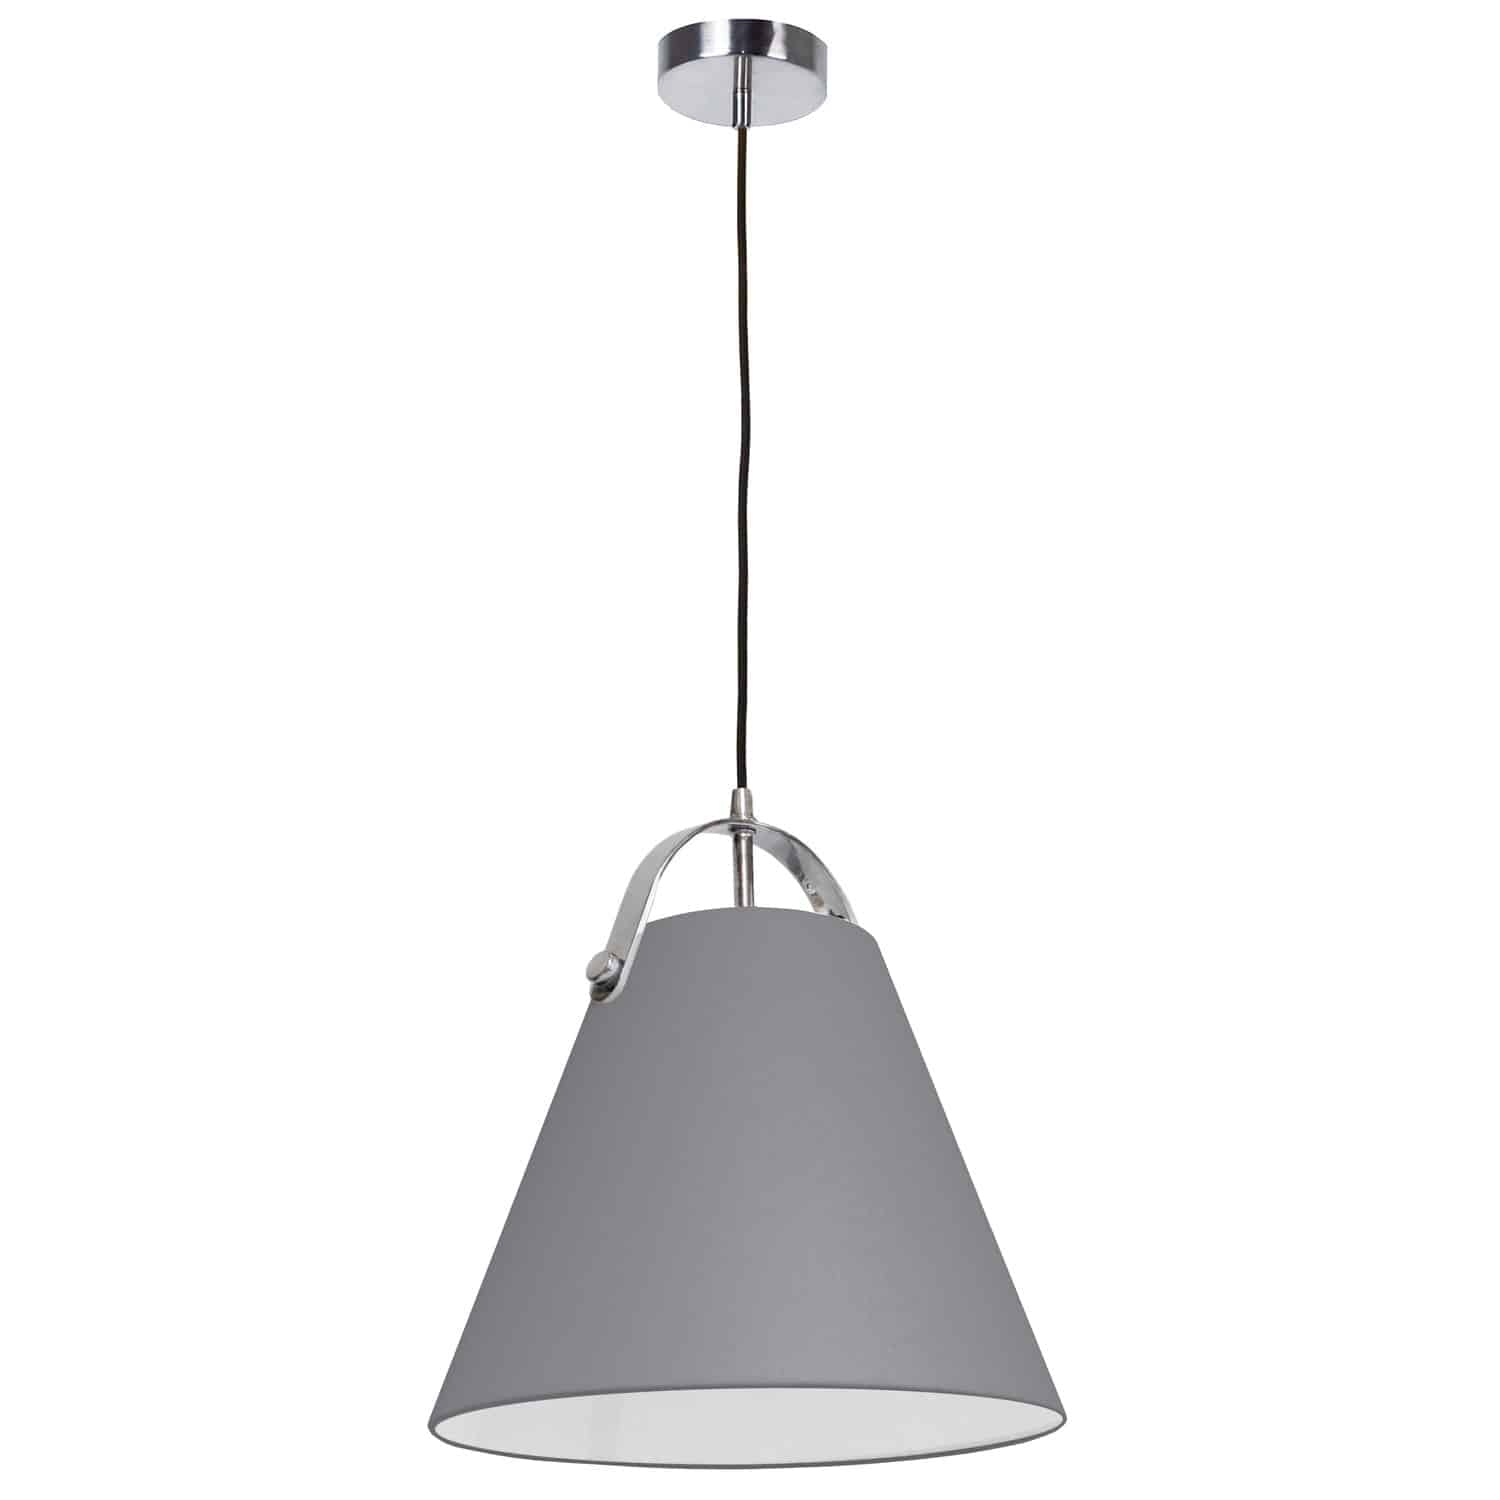 1 Light Emperor Pendant Polished Chrome with Grey Shade